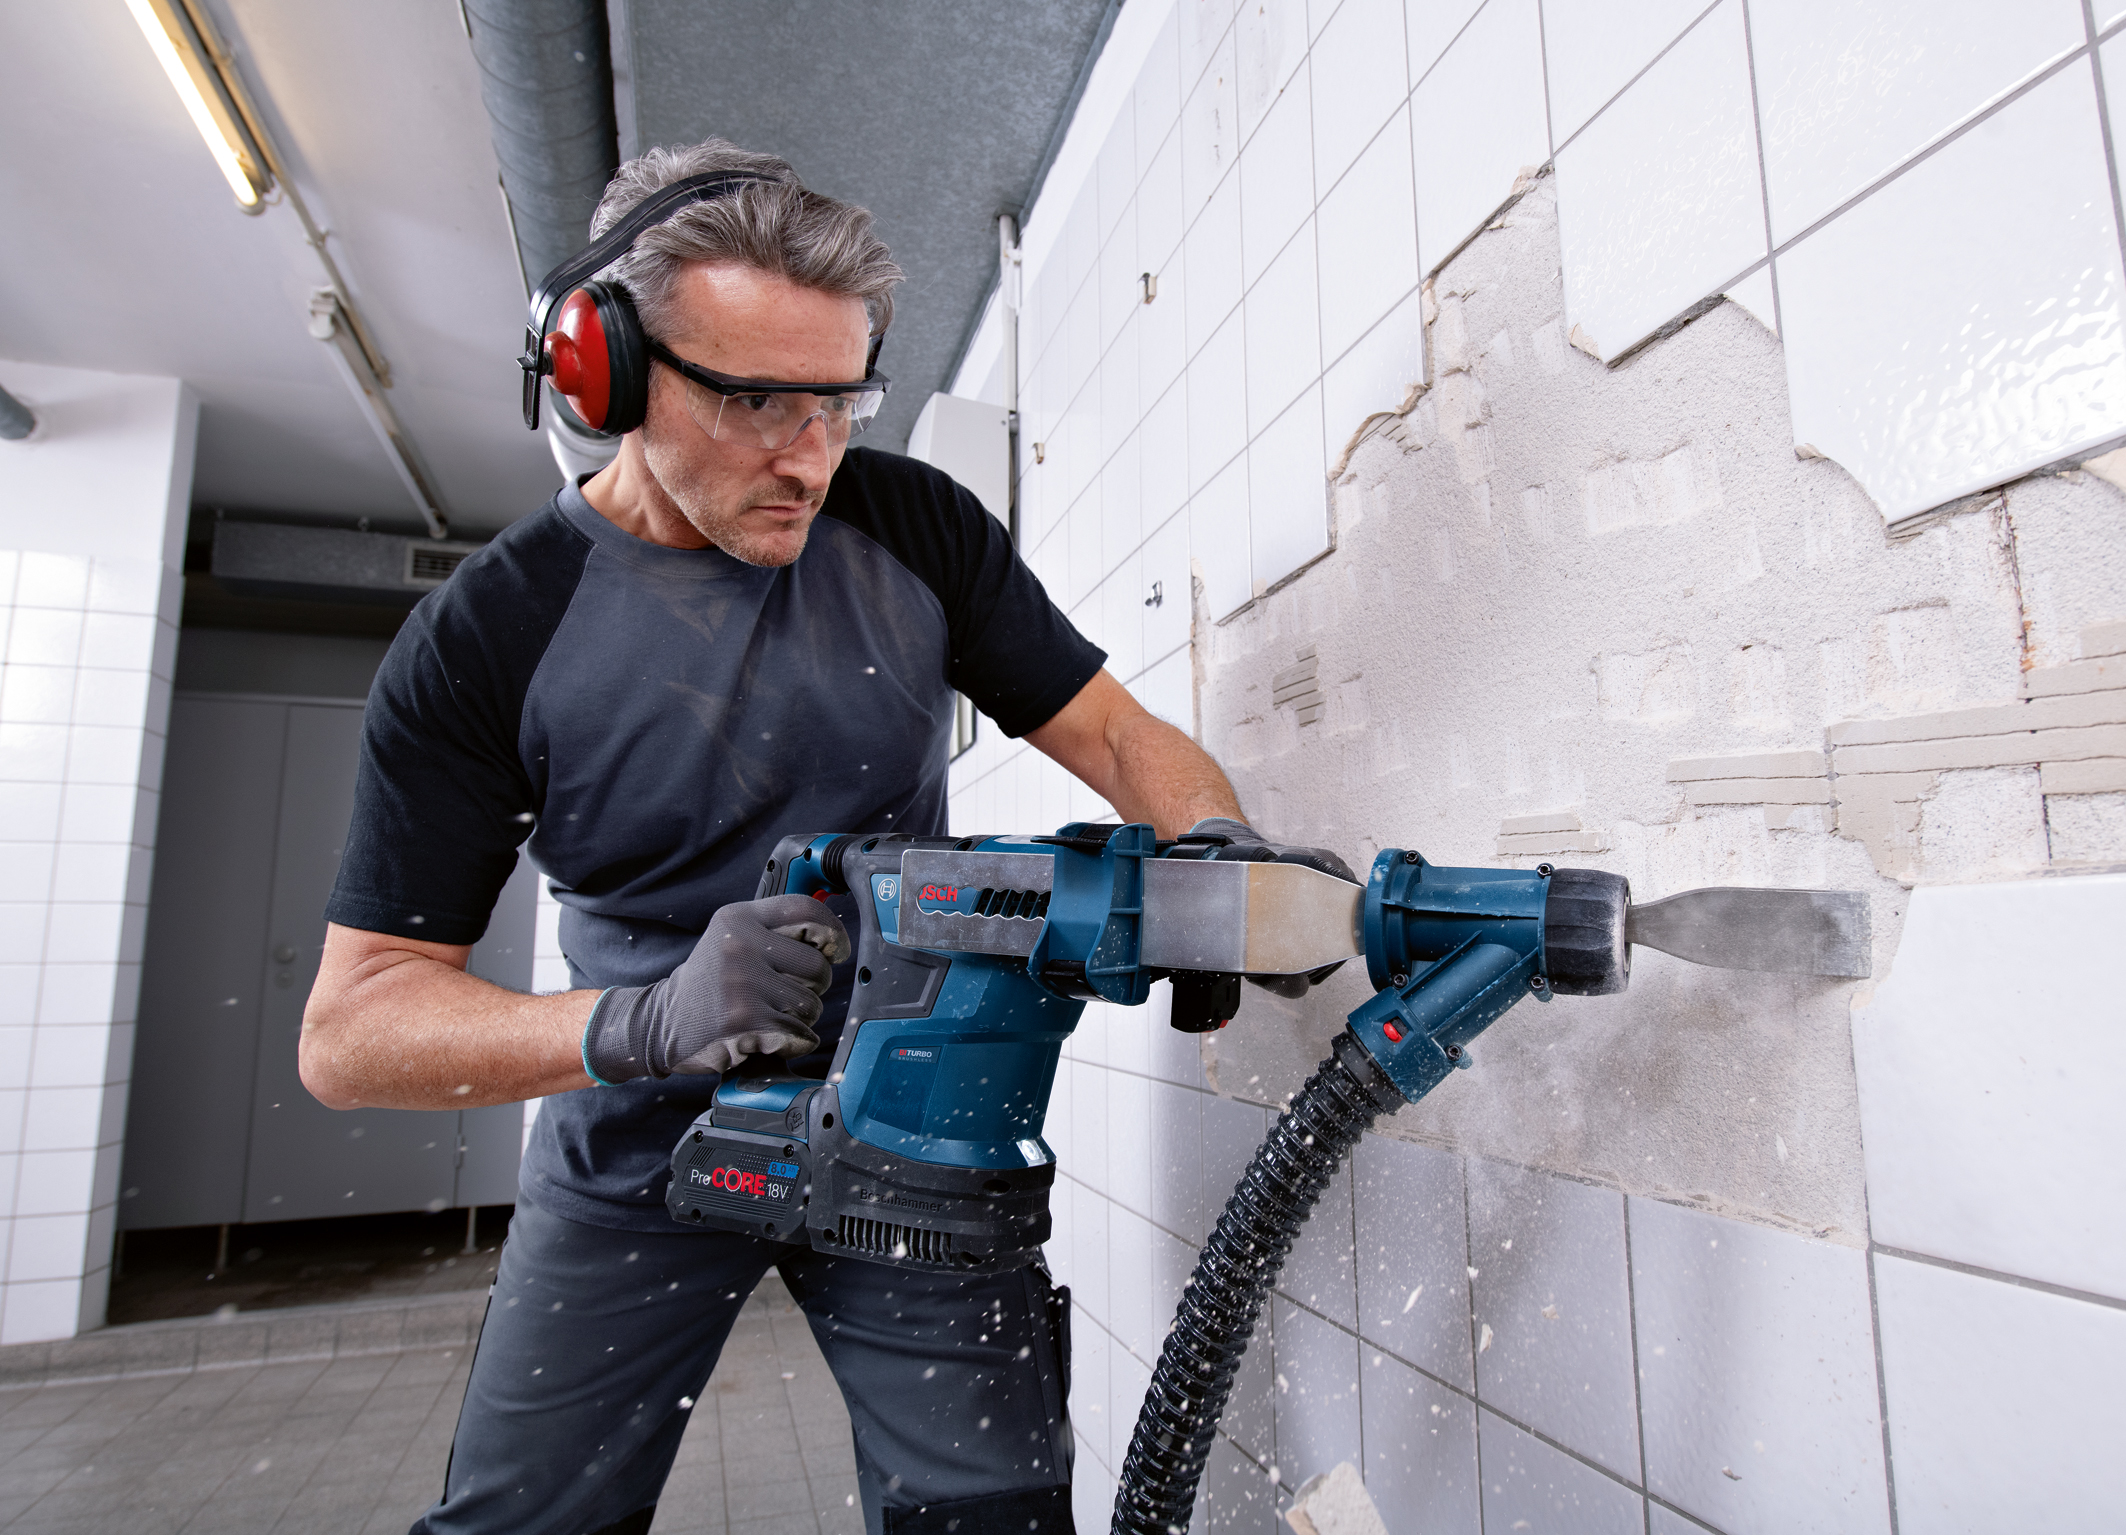 Optimized control and setting via User Interface and connectivity: New Biturbo hammer from Bosch for professionals